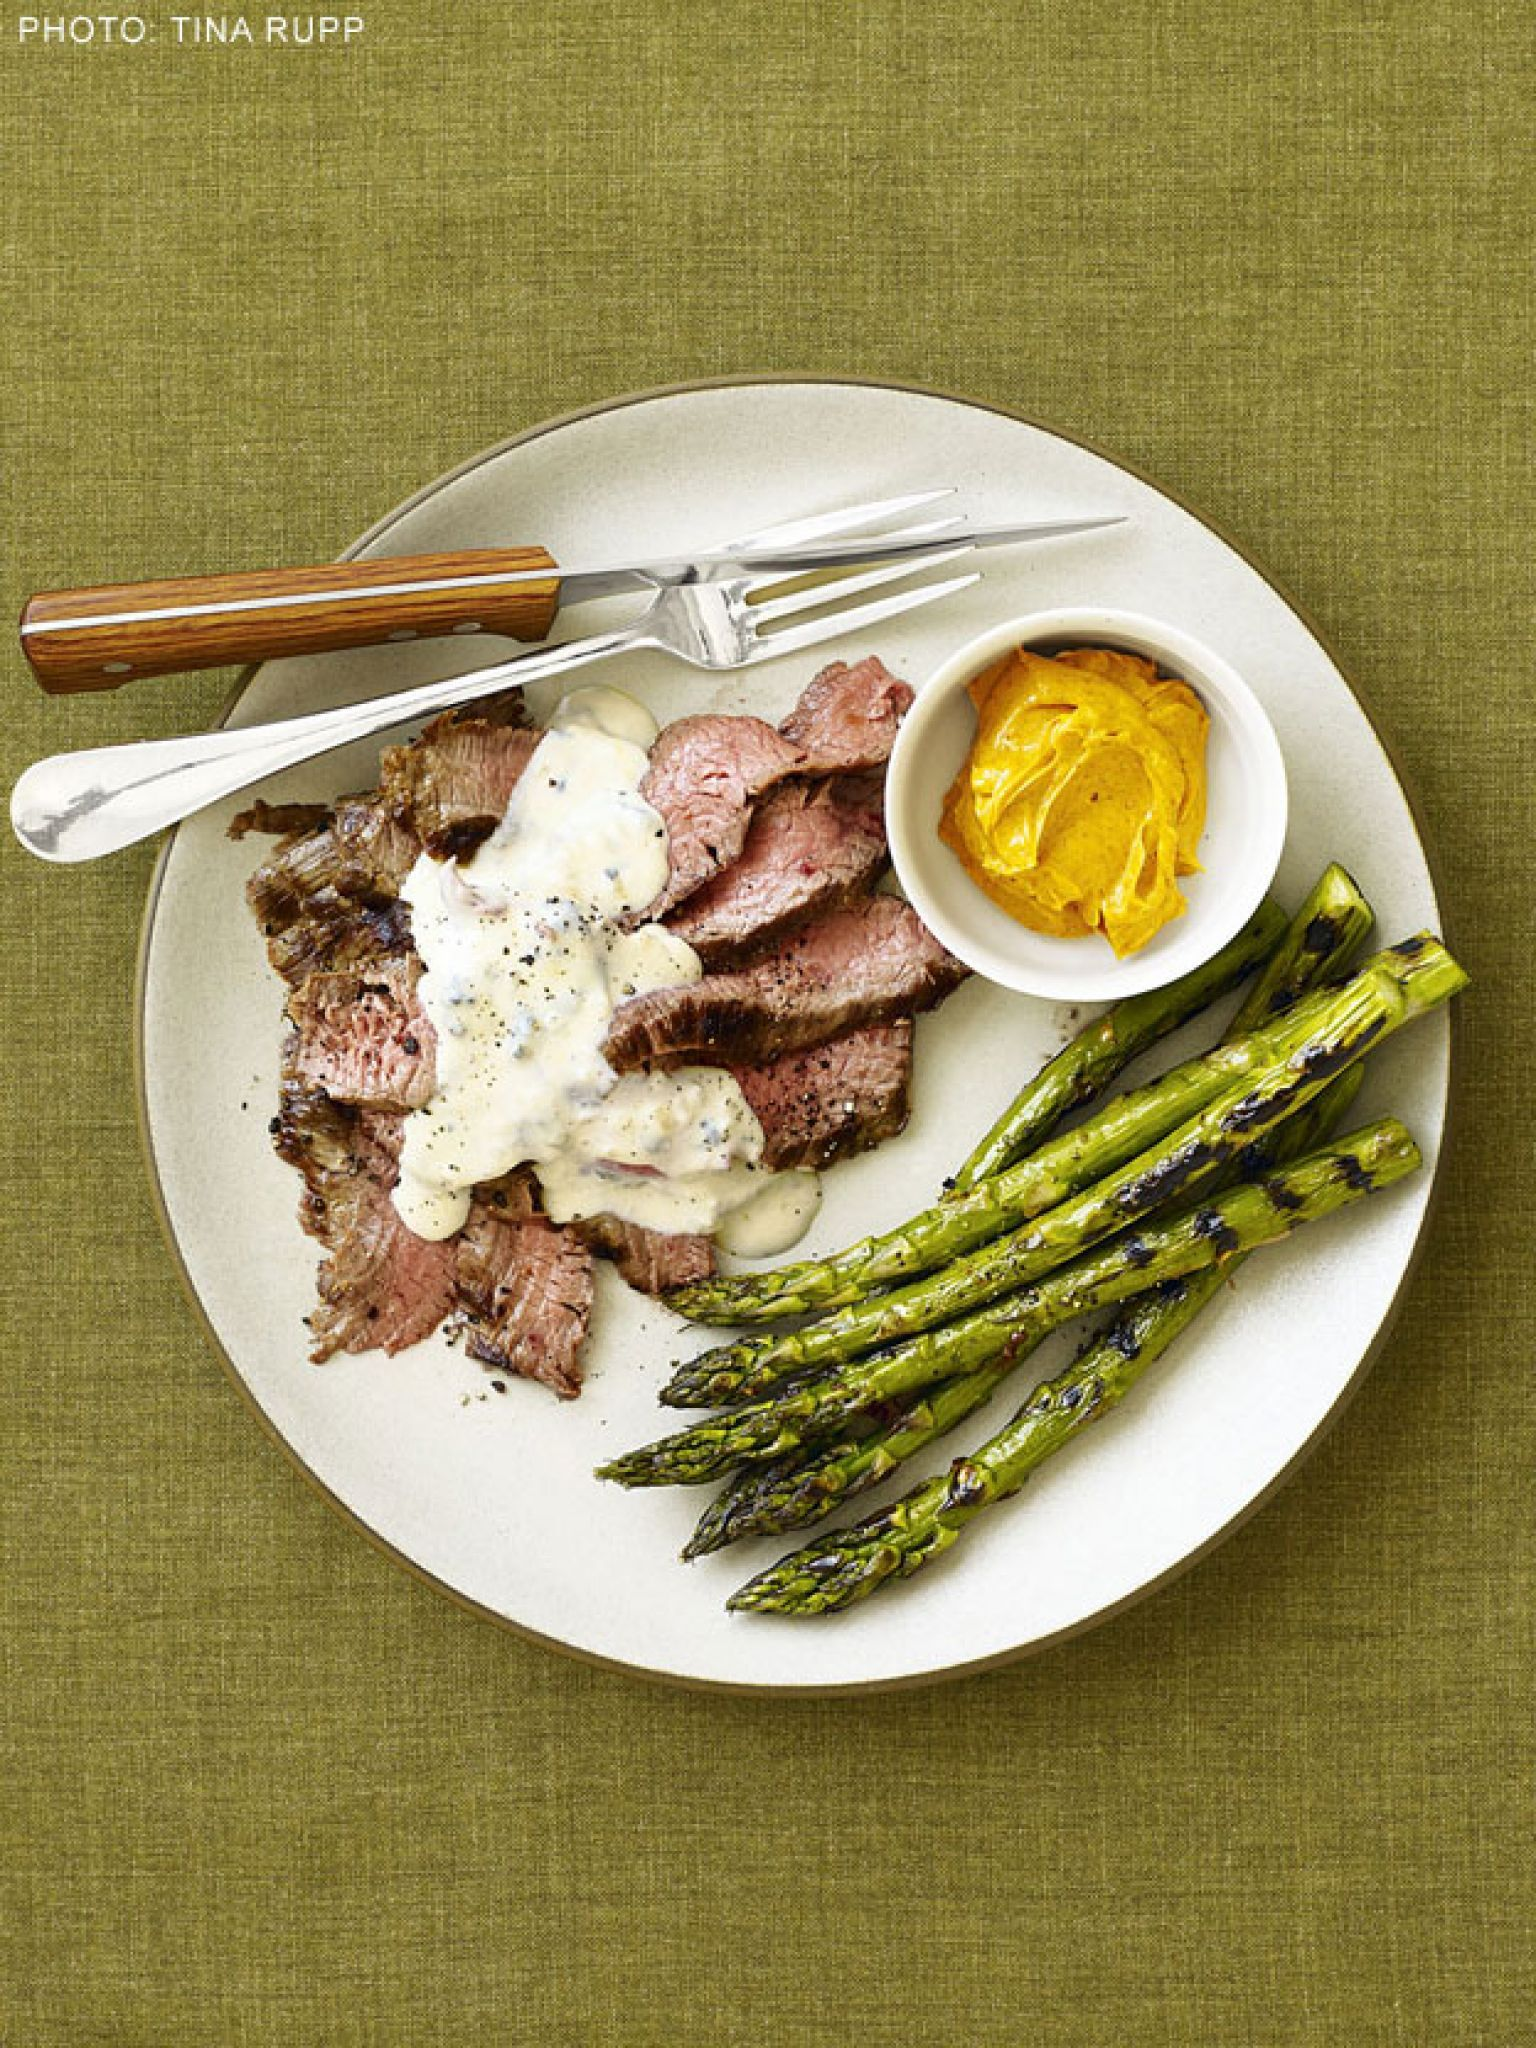 Grilled Flank Steak with Gorgonzola Cream Sauce and Asparagus recipe from Patrick and Gina Neely via Food Network